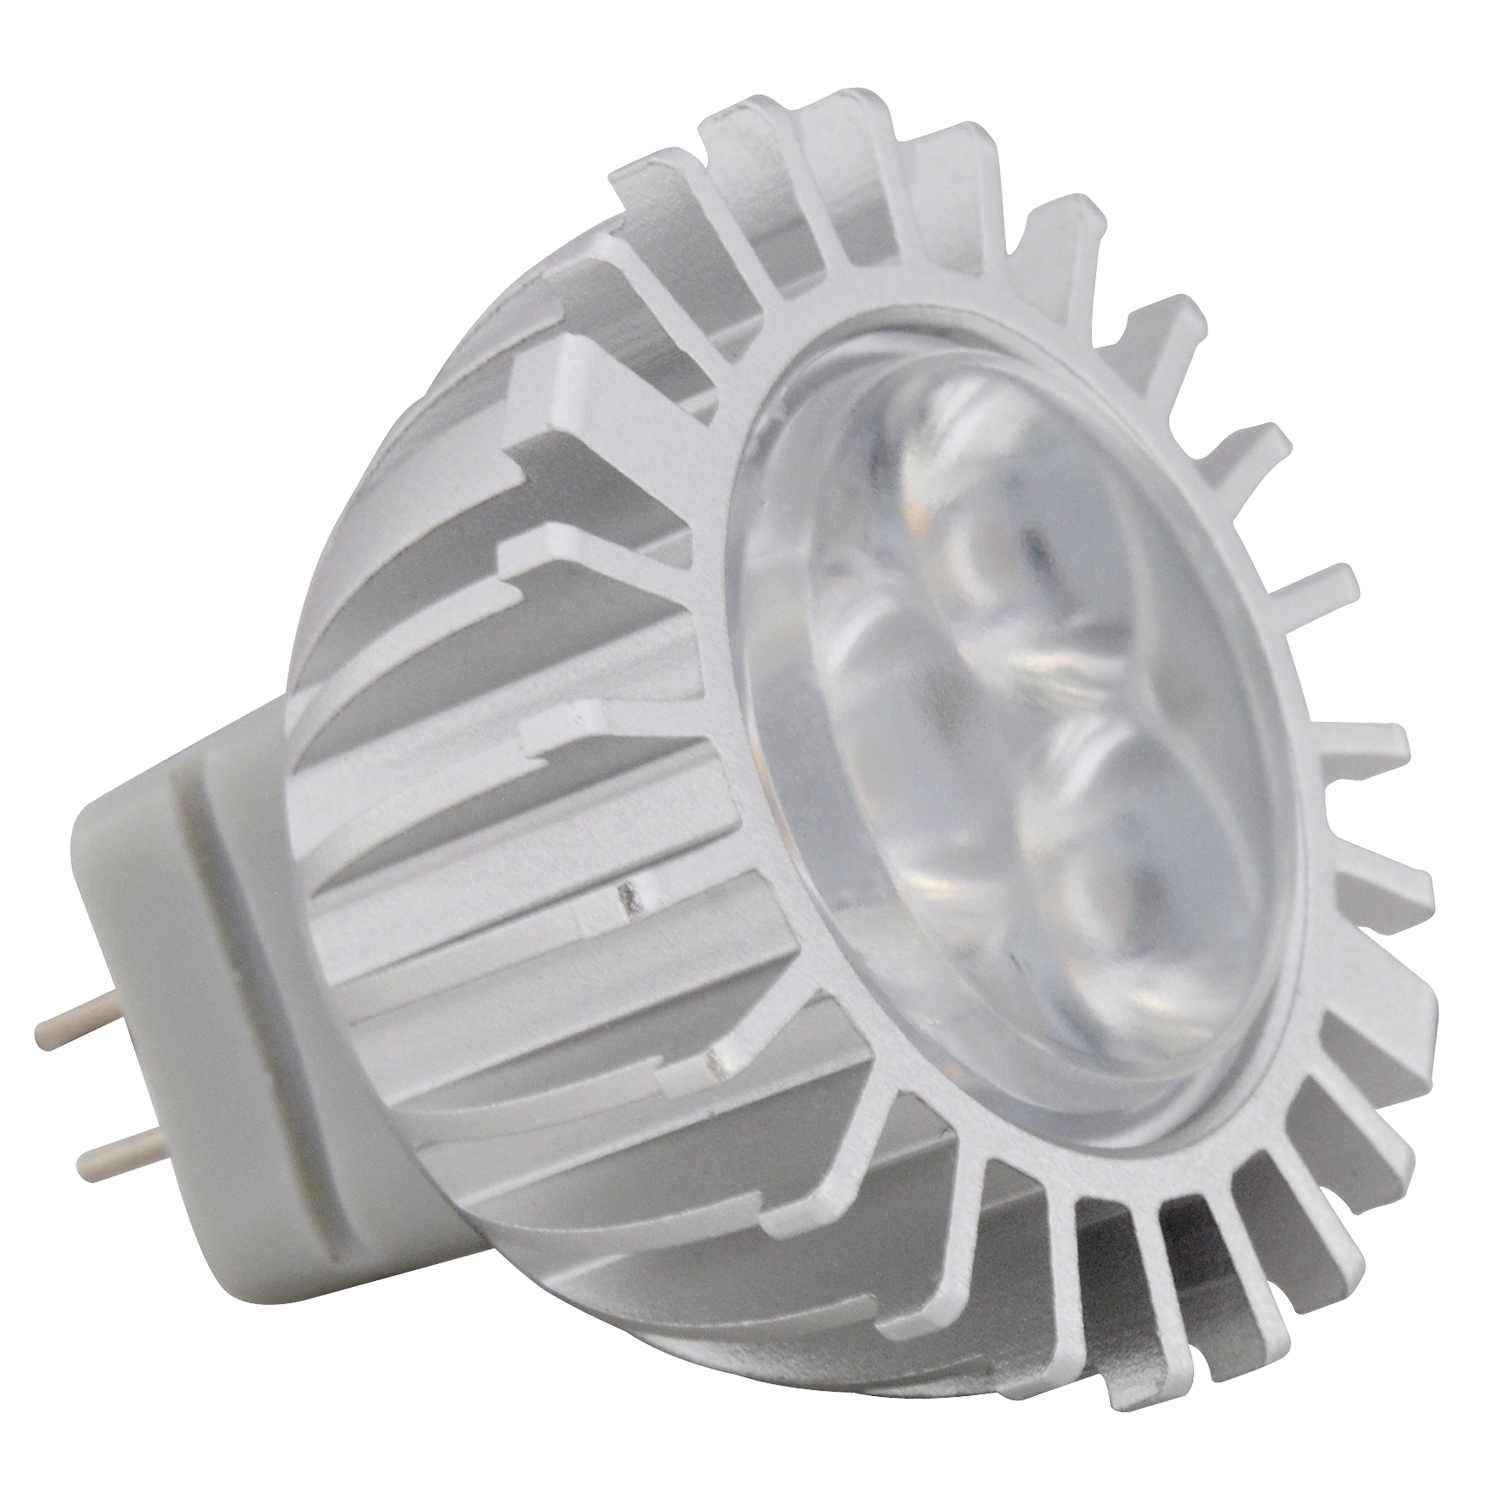 MR11FTD/850/LED 81095 LED MR11 3W 30DEG 5000K GU4 PROLED